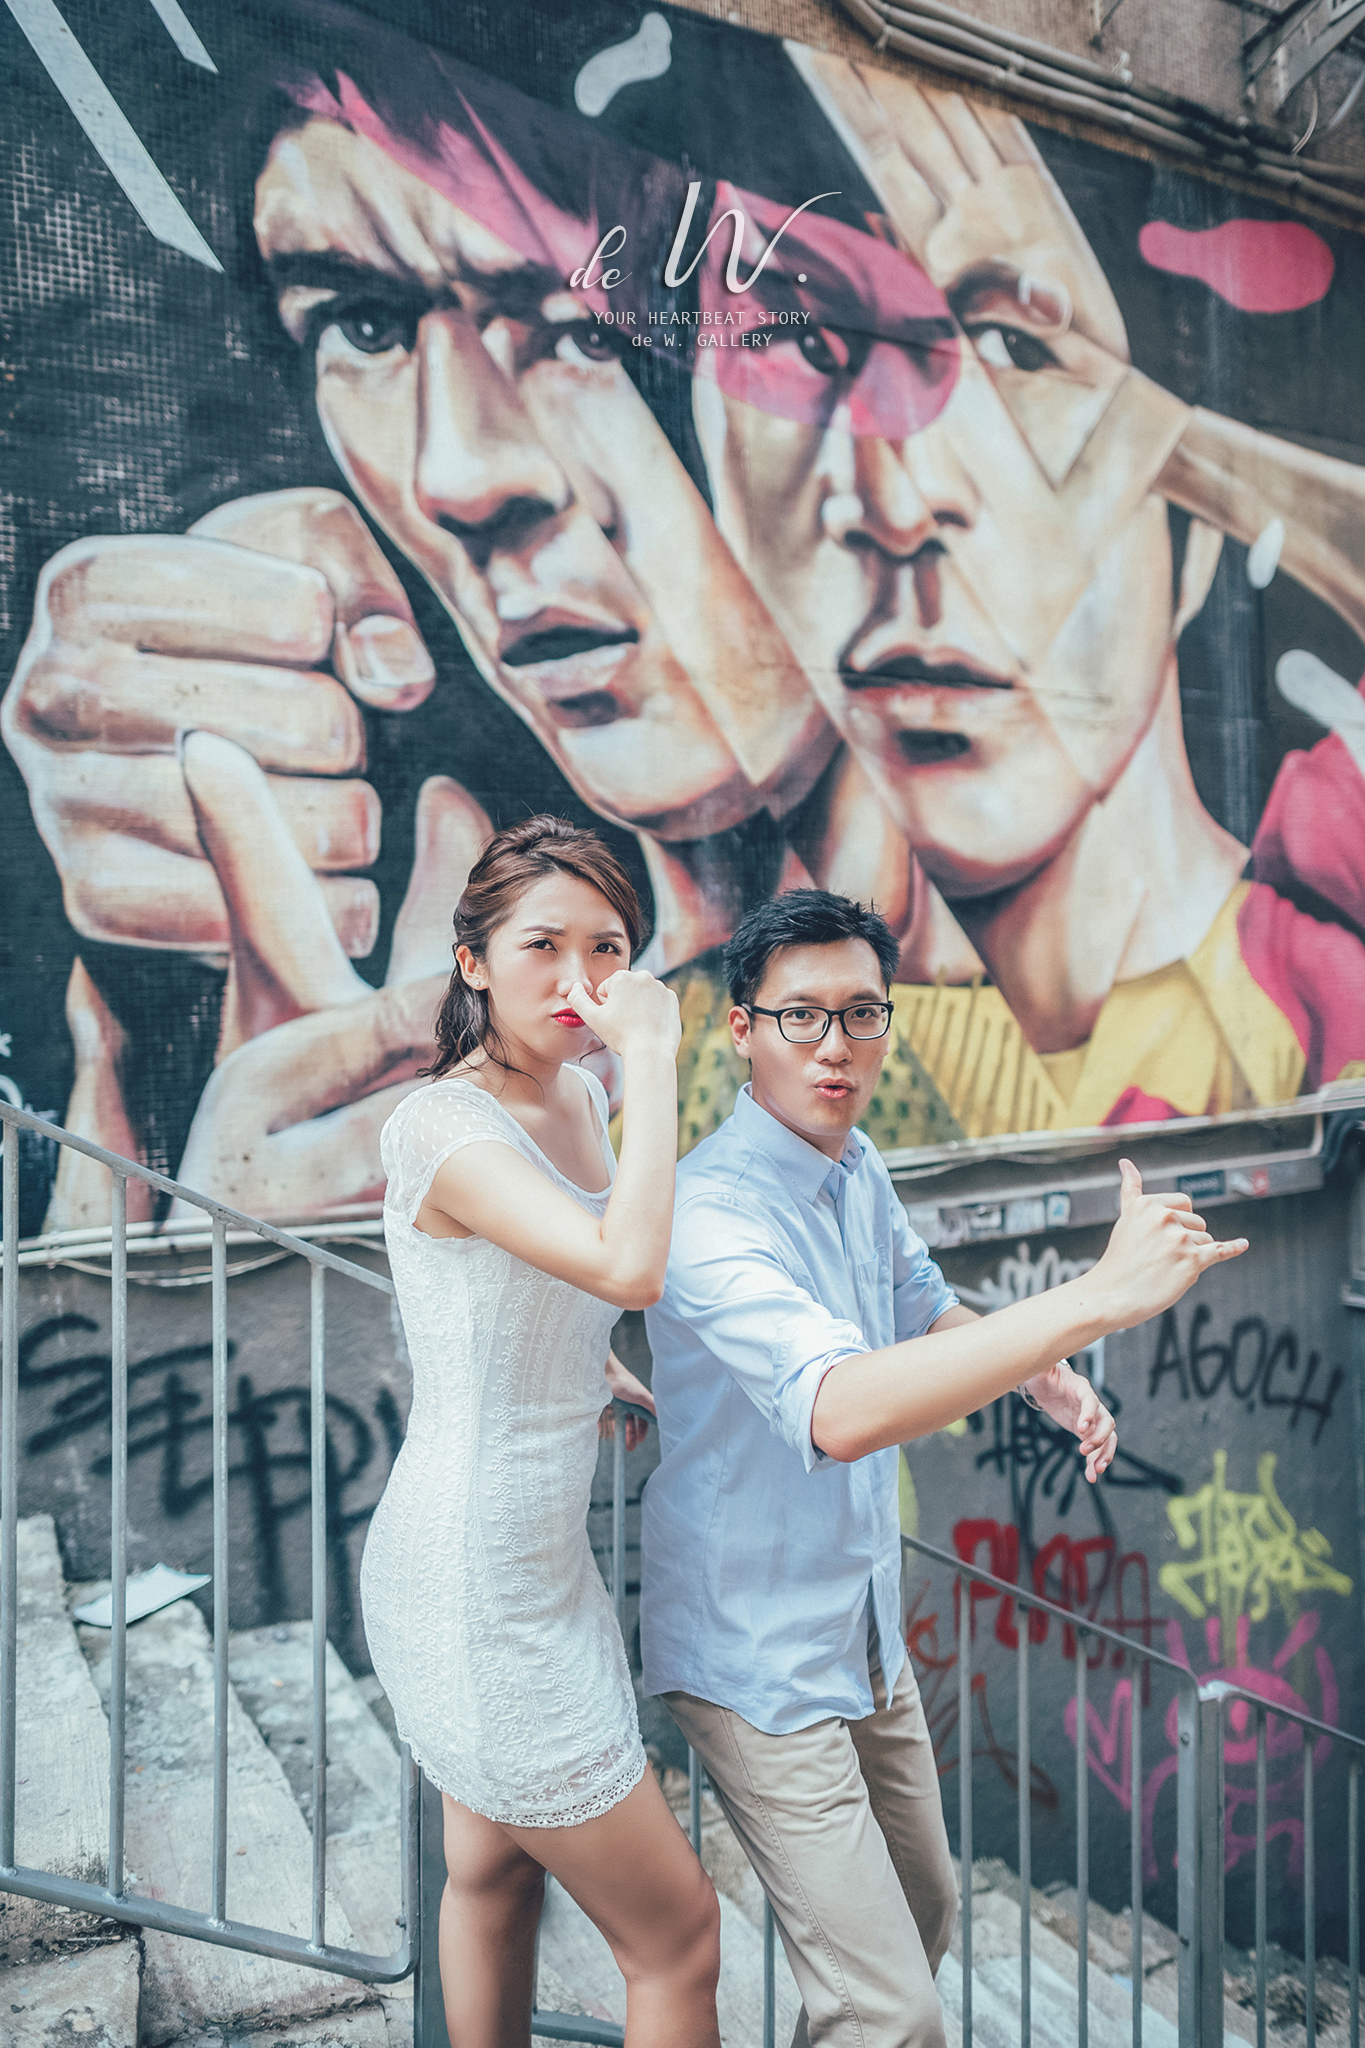 2048 de w gallery Film style hong kong 底片 拍拖 engagement vsco 故事 中環 西環 central-18